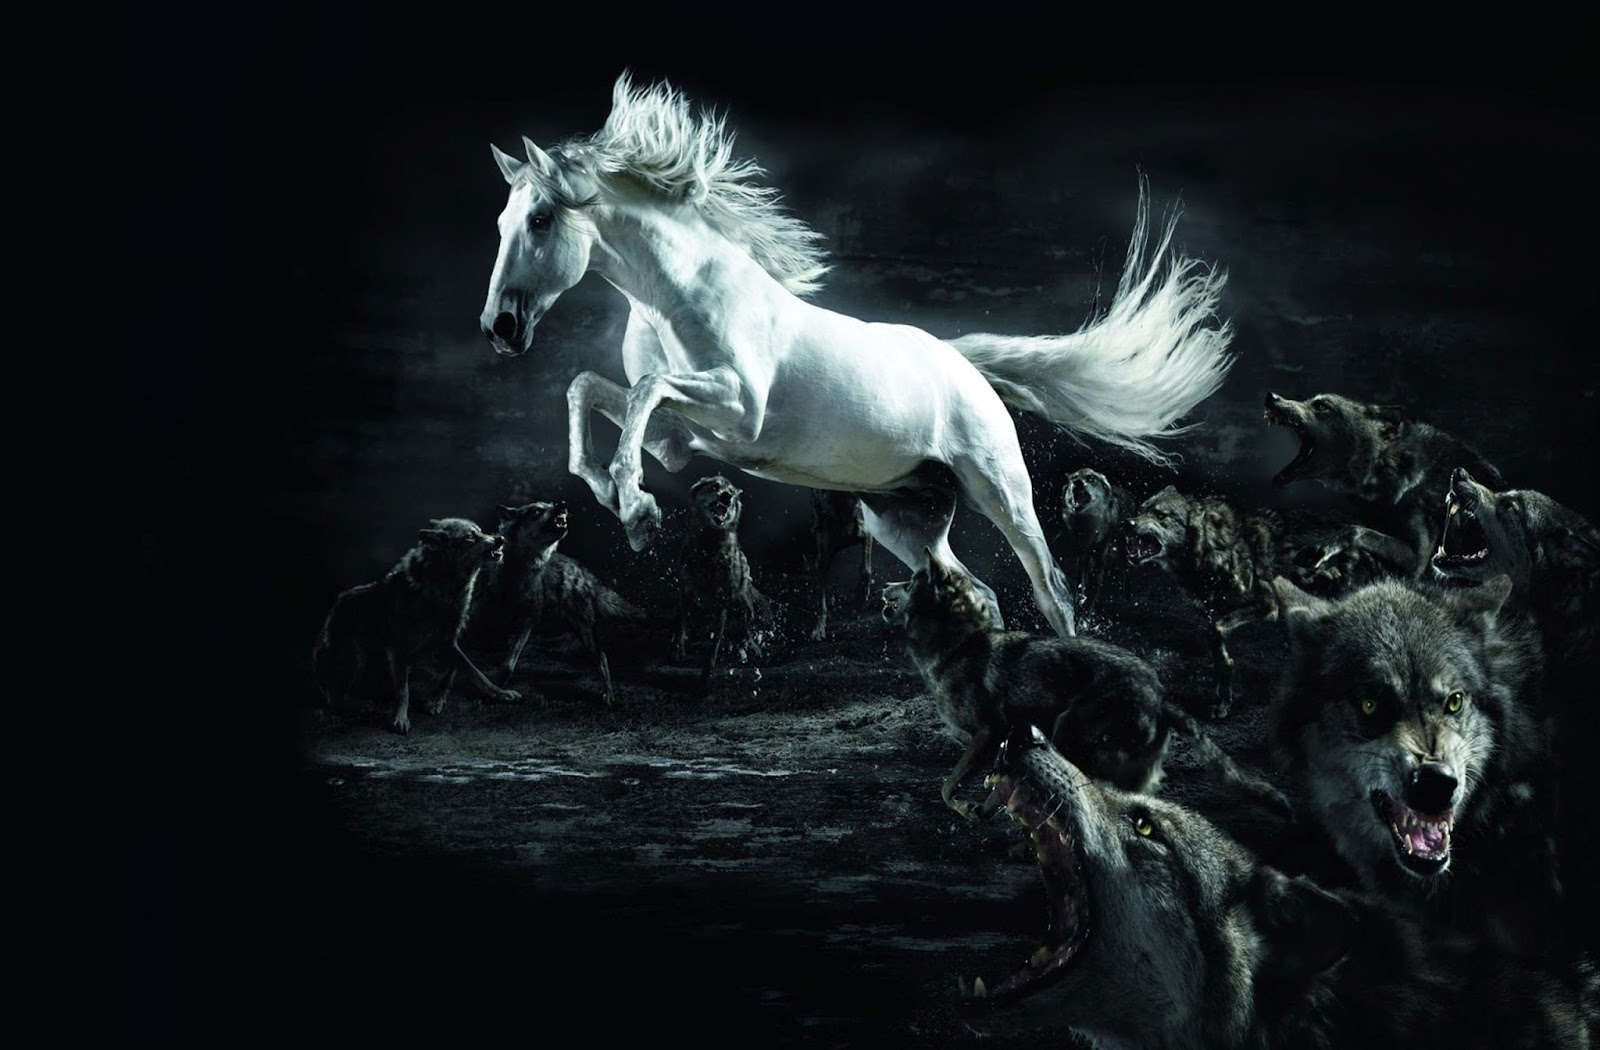 Most Inspiring   Wallpaper Horse Halloween - wxp%2B(21)  Snapshot_266869.jpg